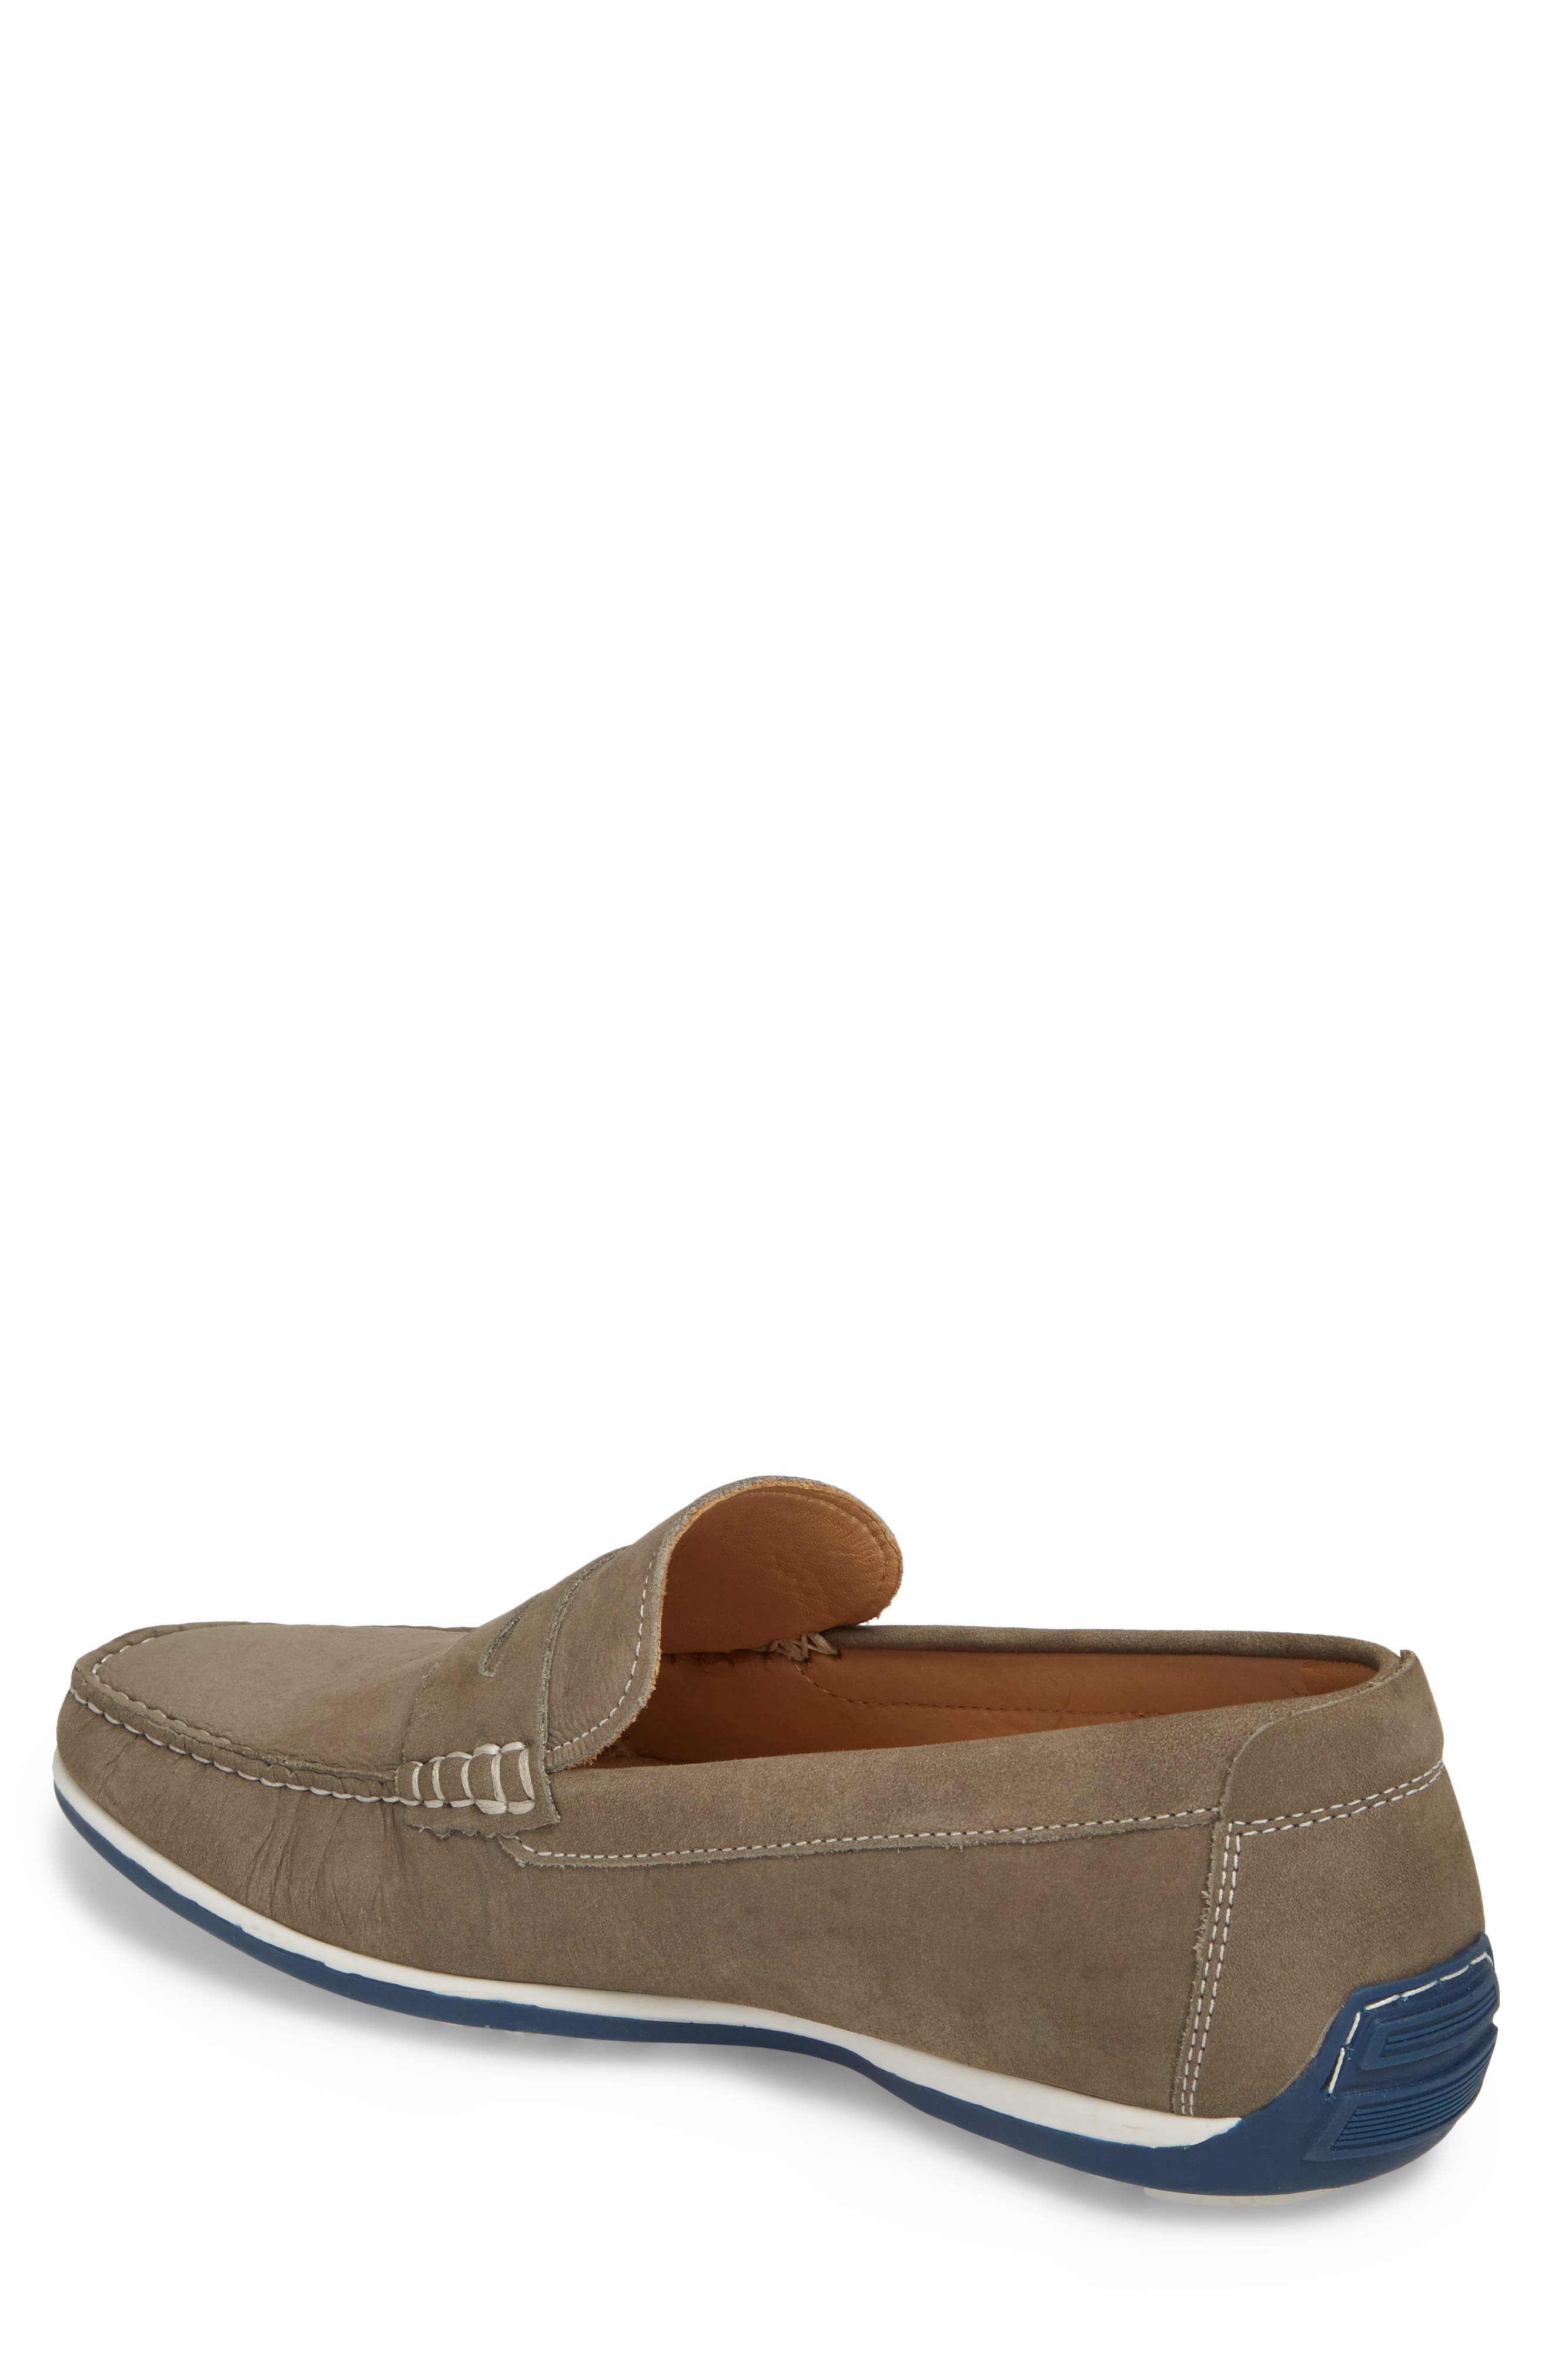 Breakside Driving Loafer,                             Alternate thumbnail 2, color,                             020